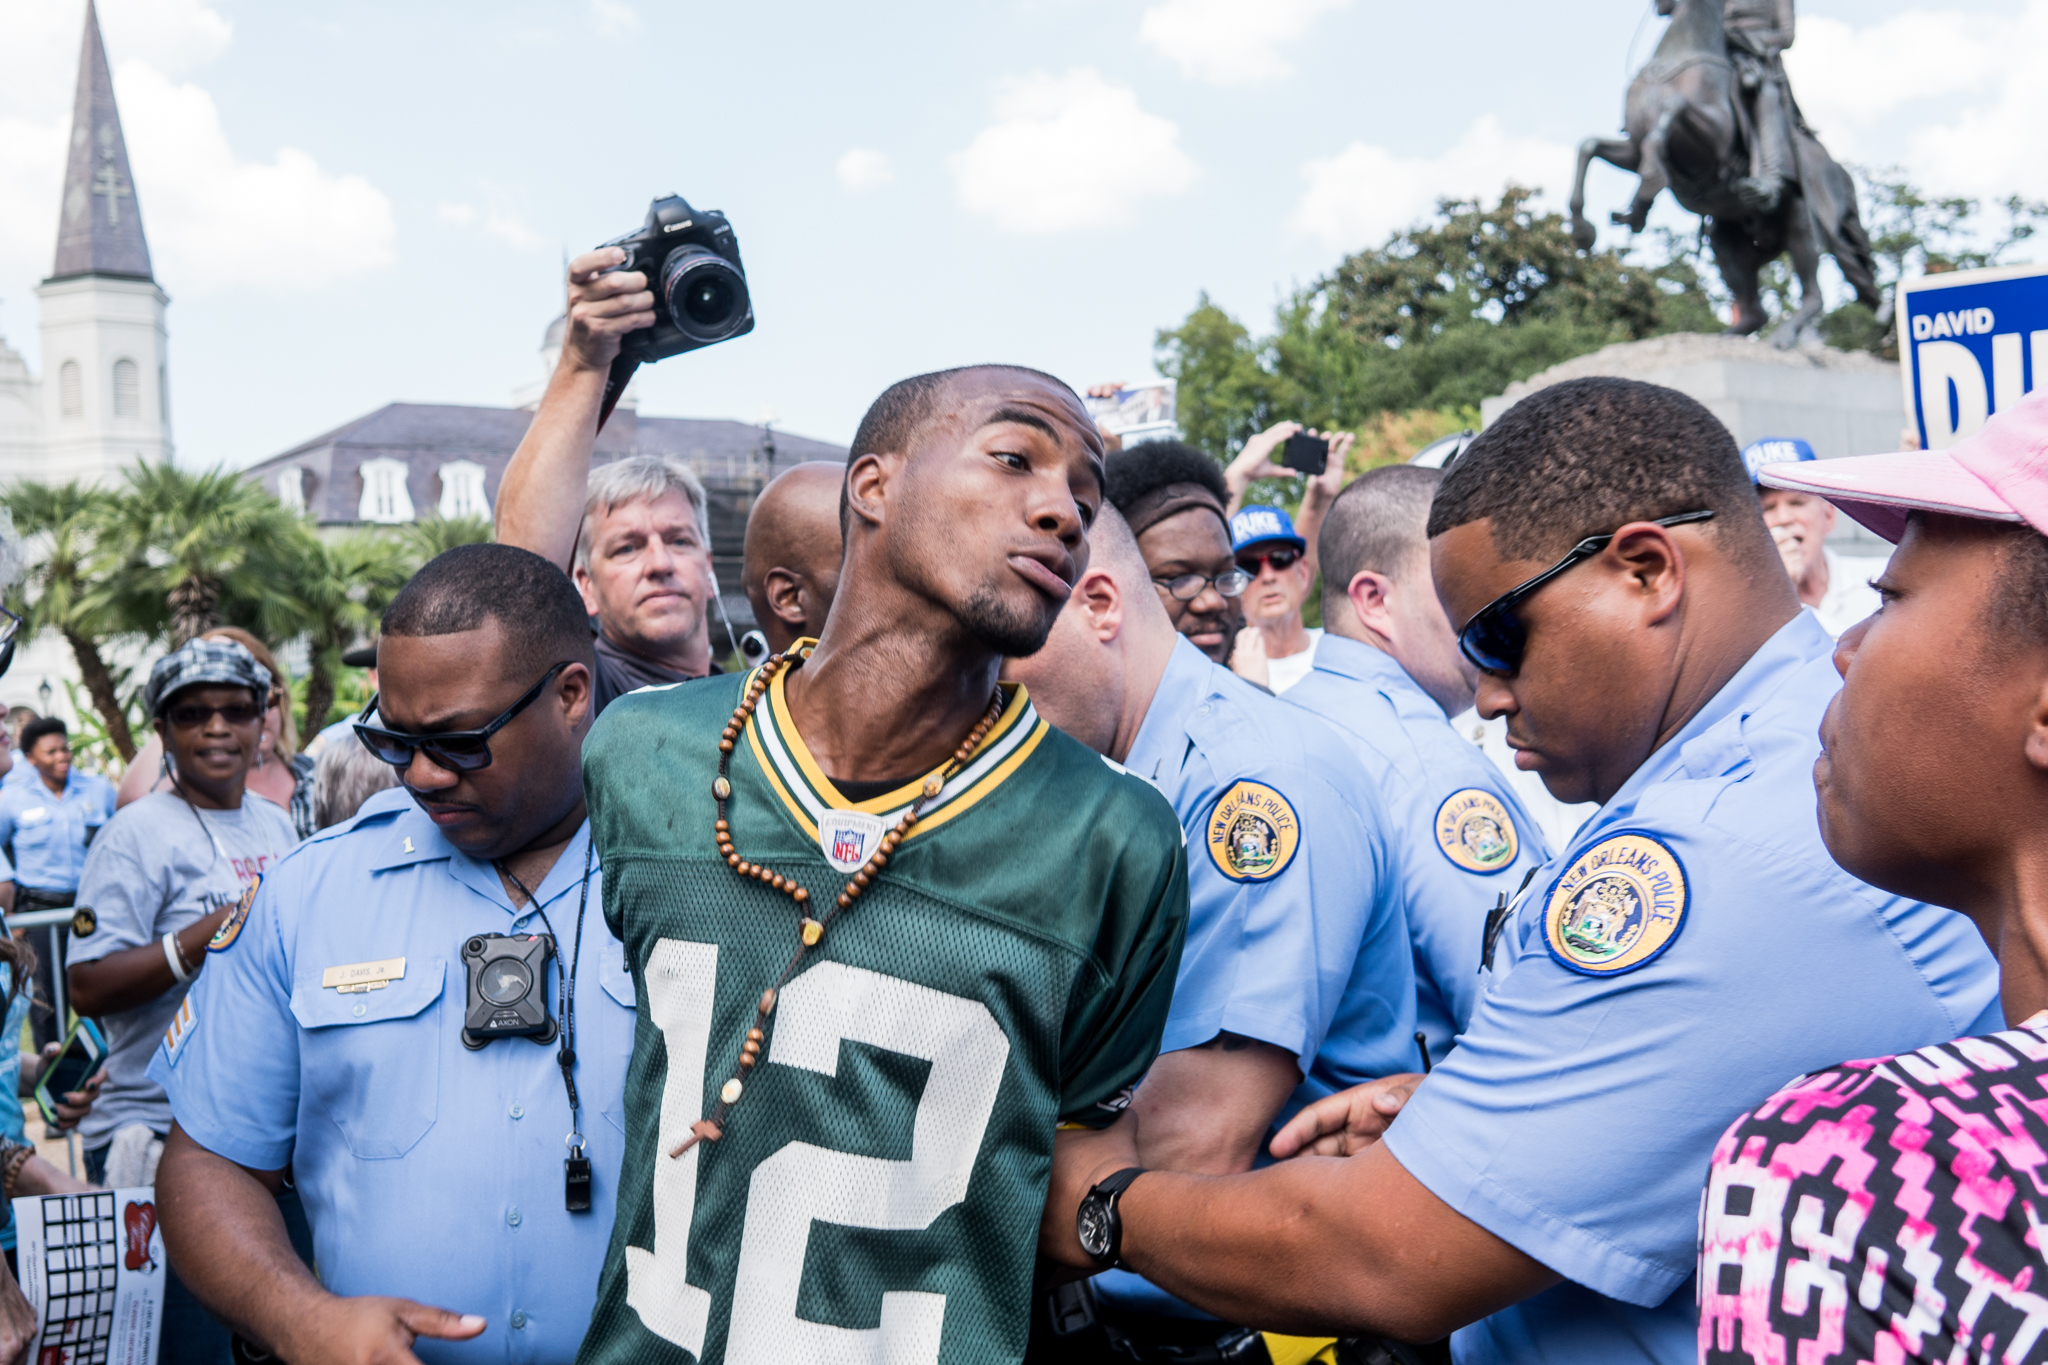 A protester is led away in handcuffs by New Orleans Police officers.